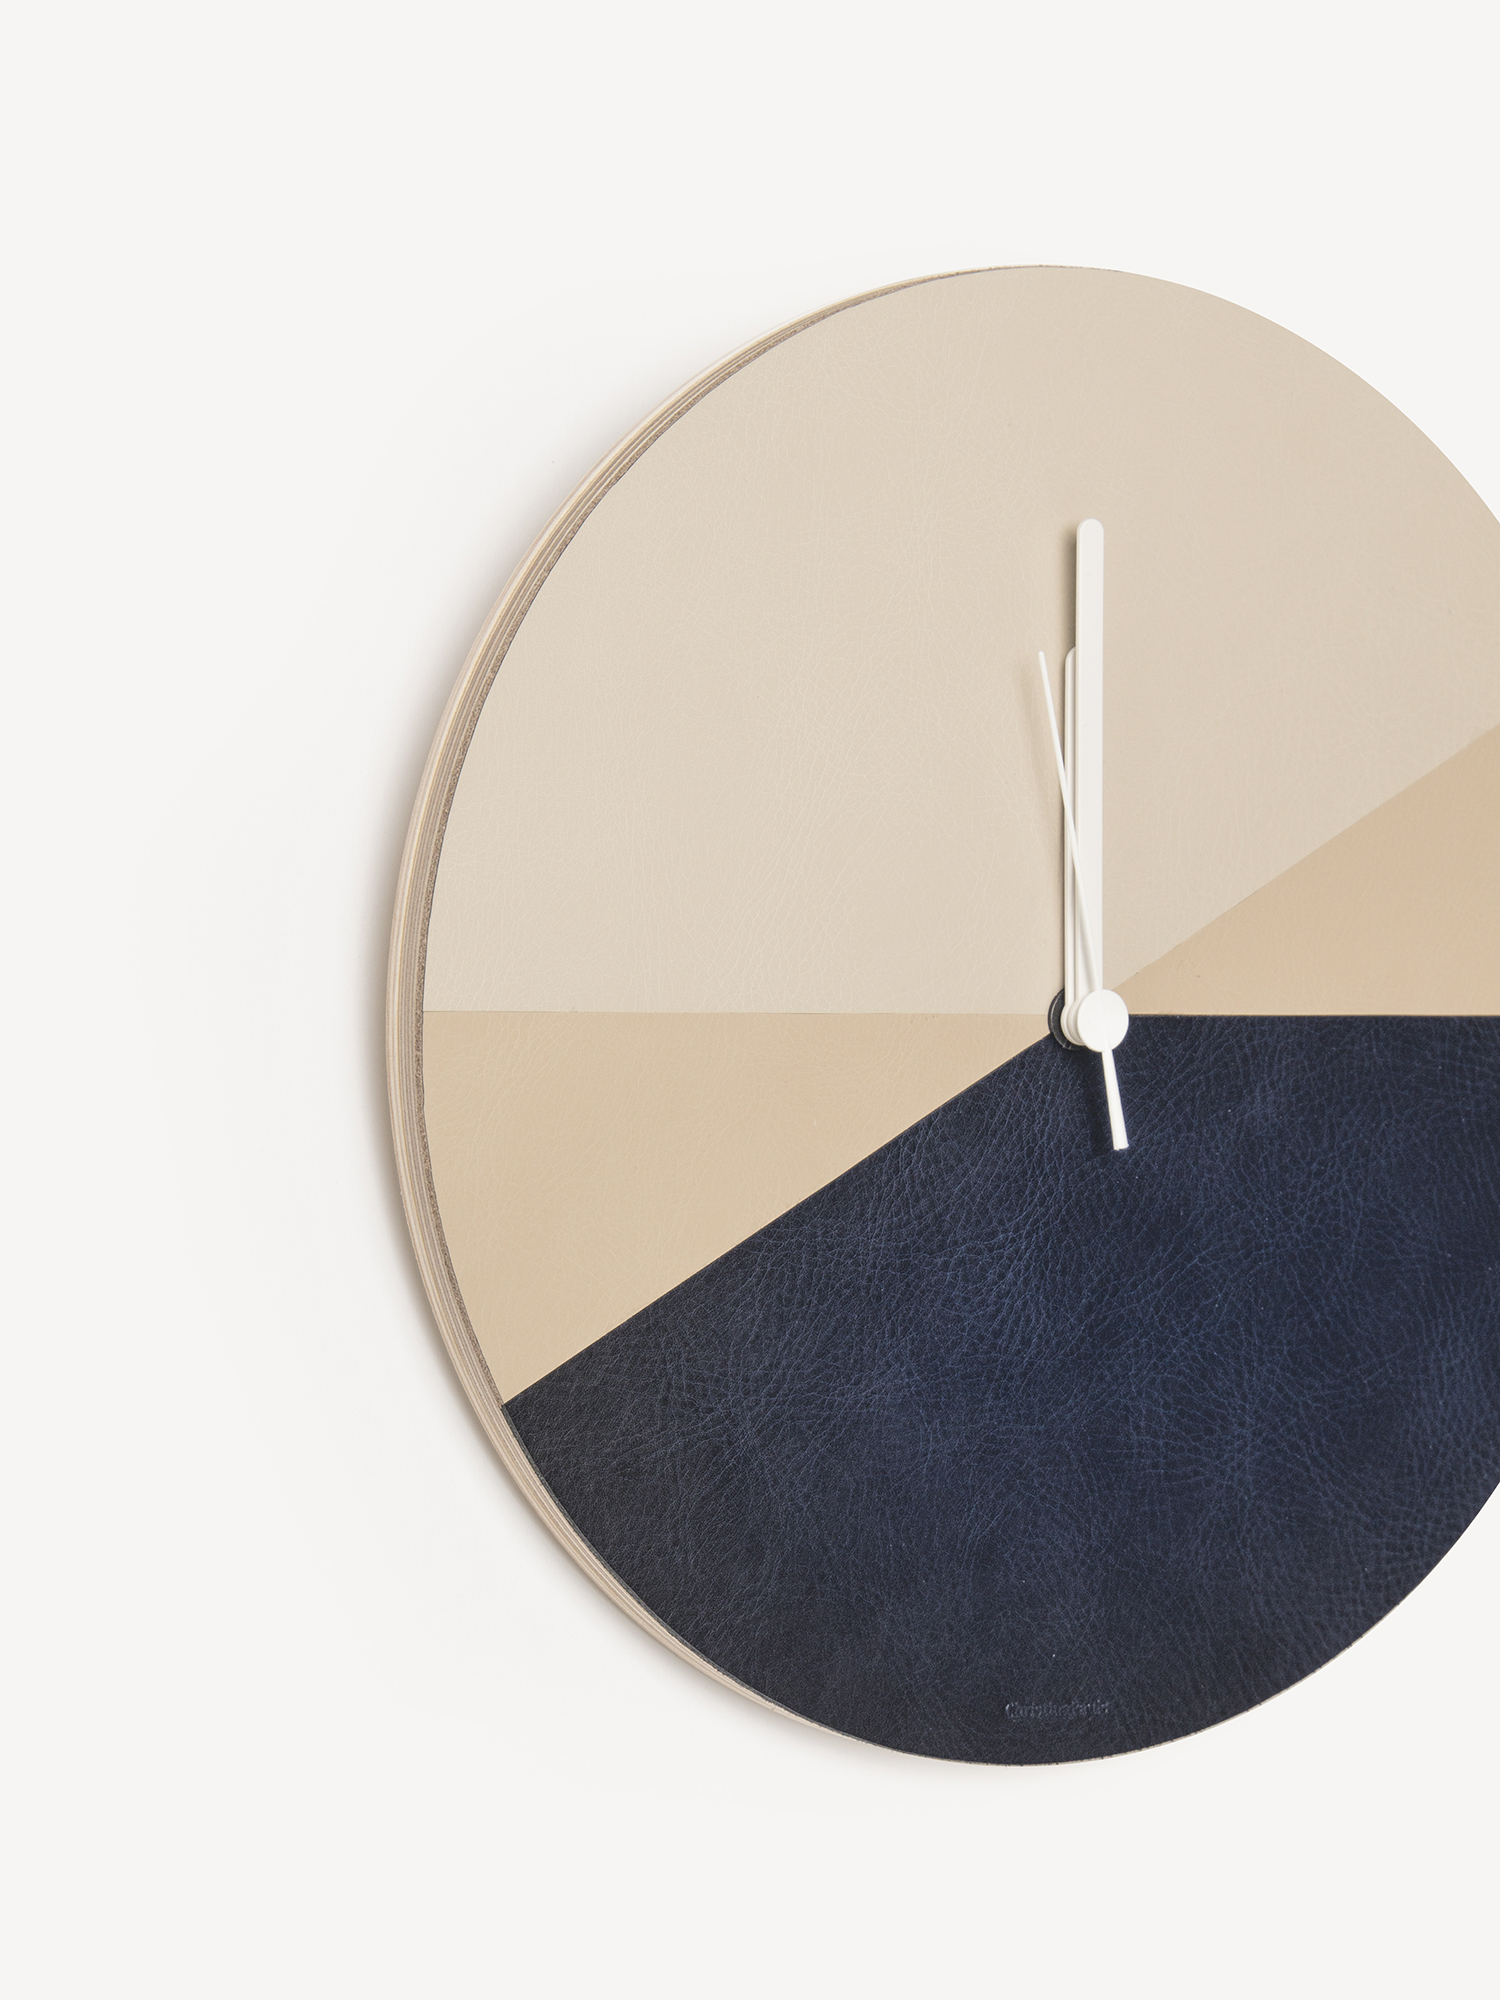 Leder-Wanduhr Keita  Leather wall clock Keita